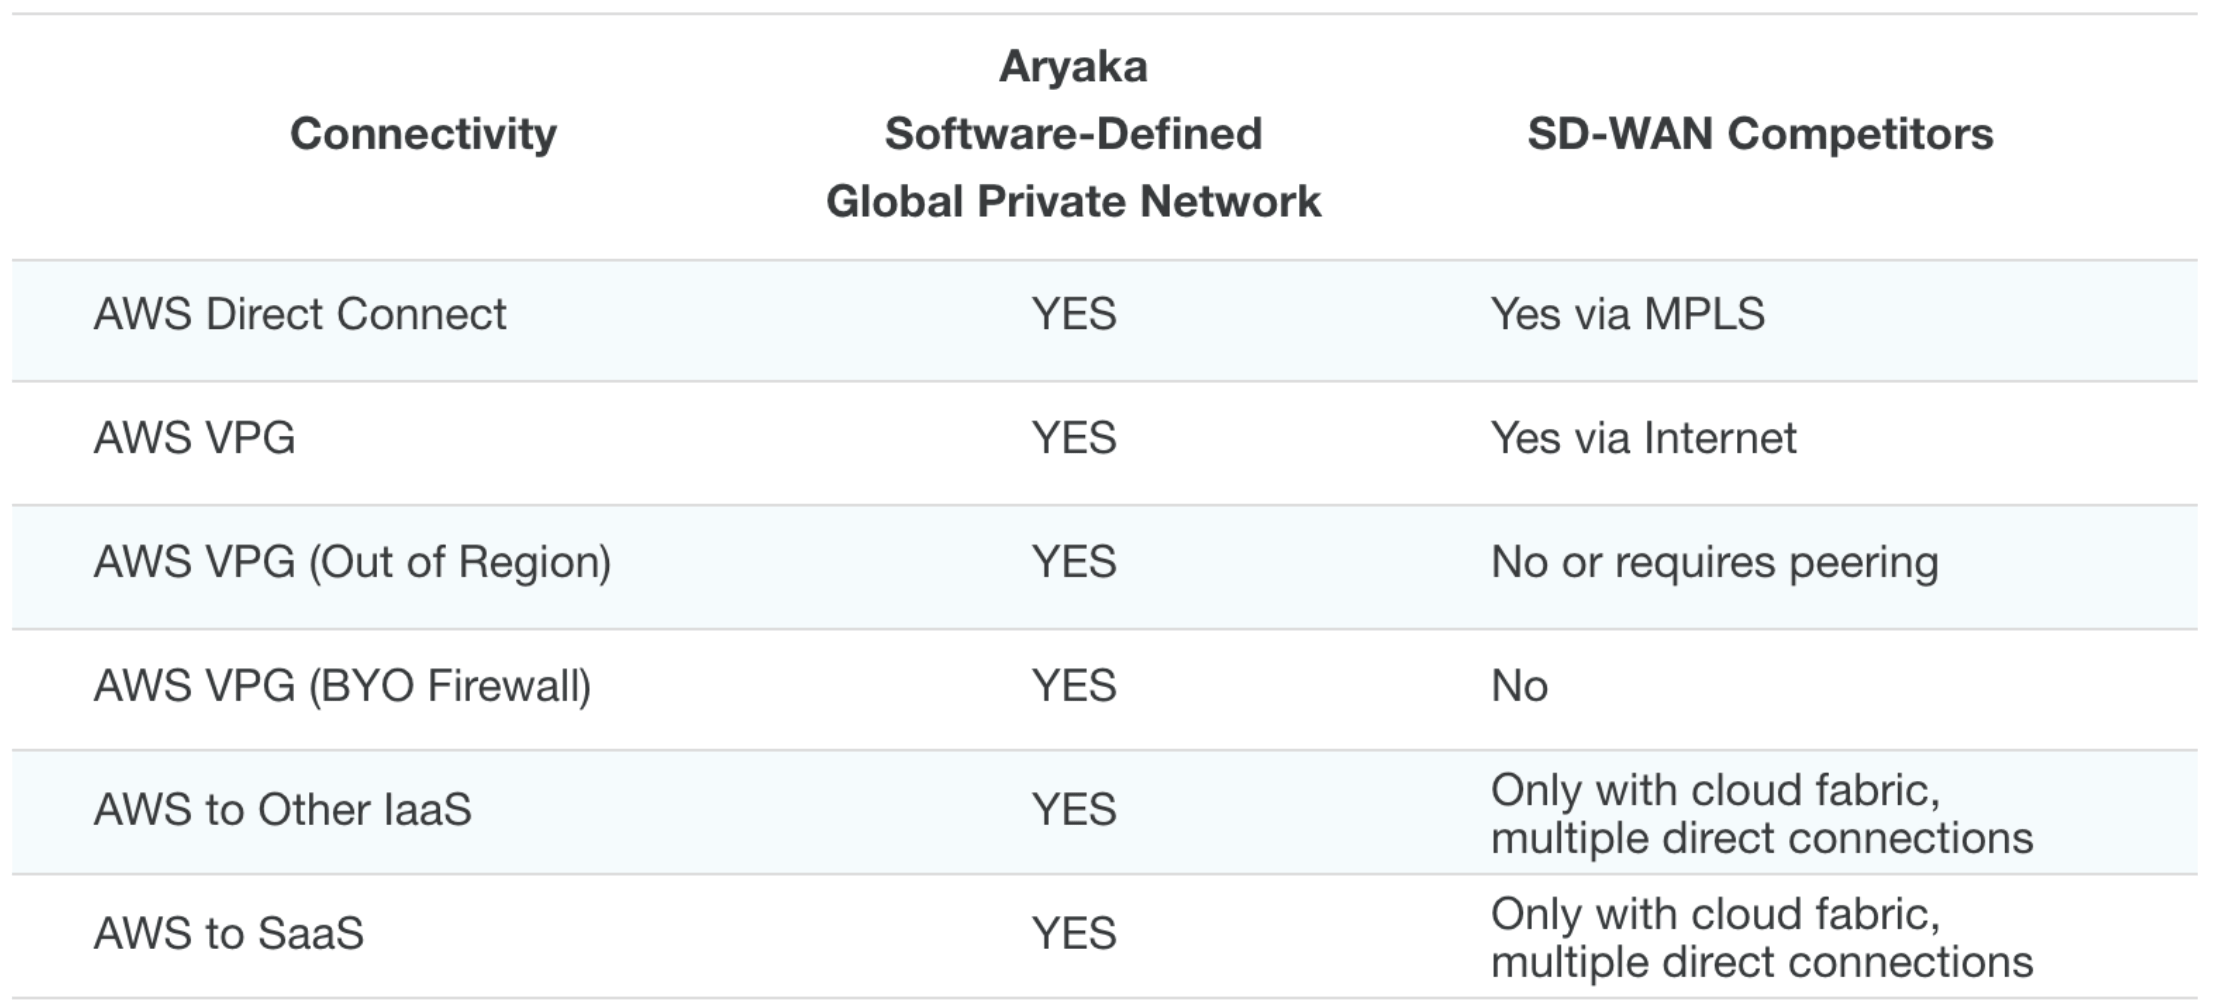 Aryaka's Managed SD-WAN vs competitors